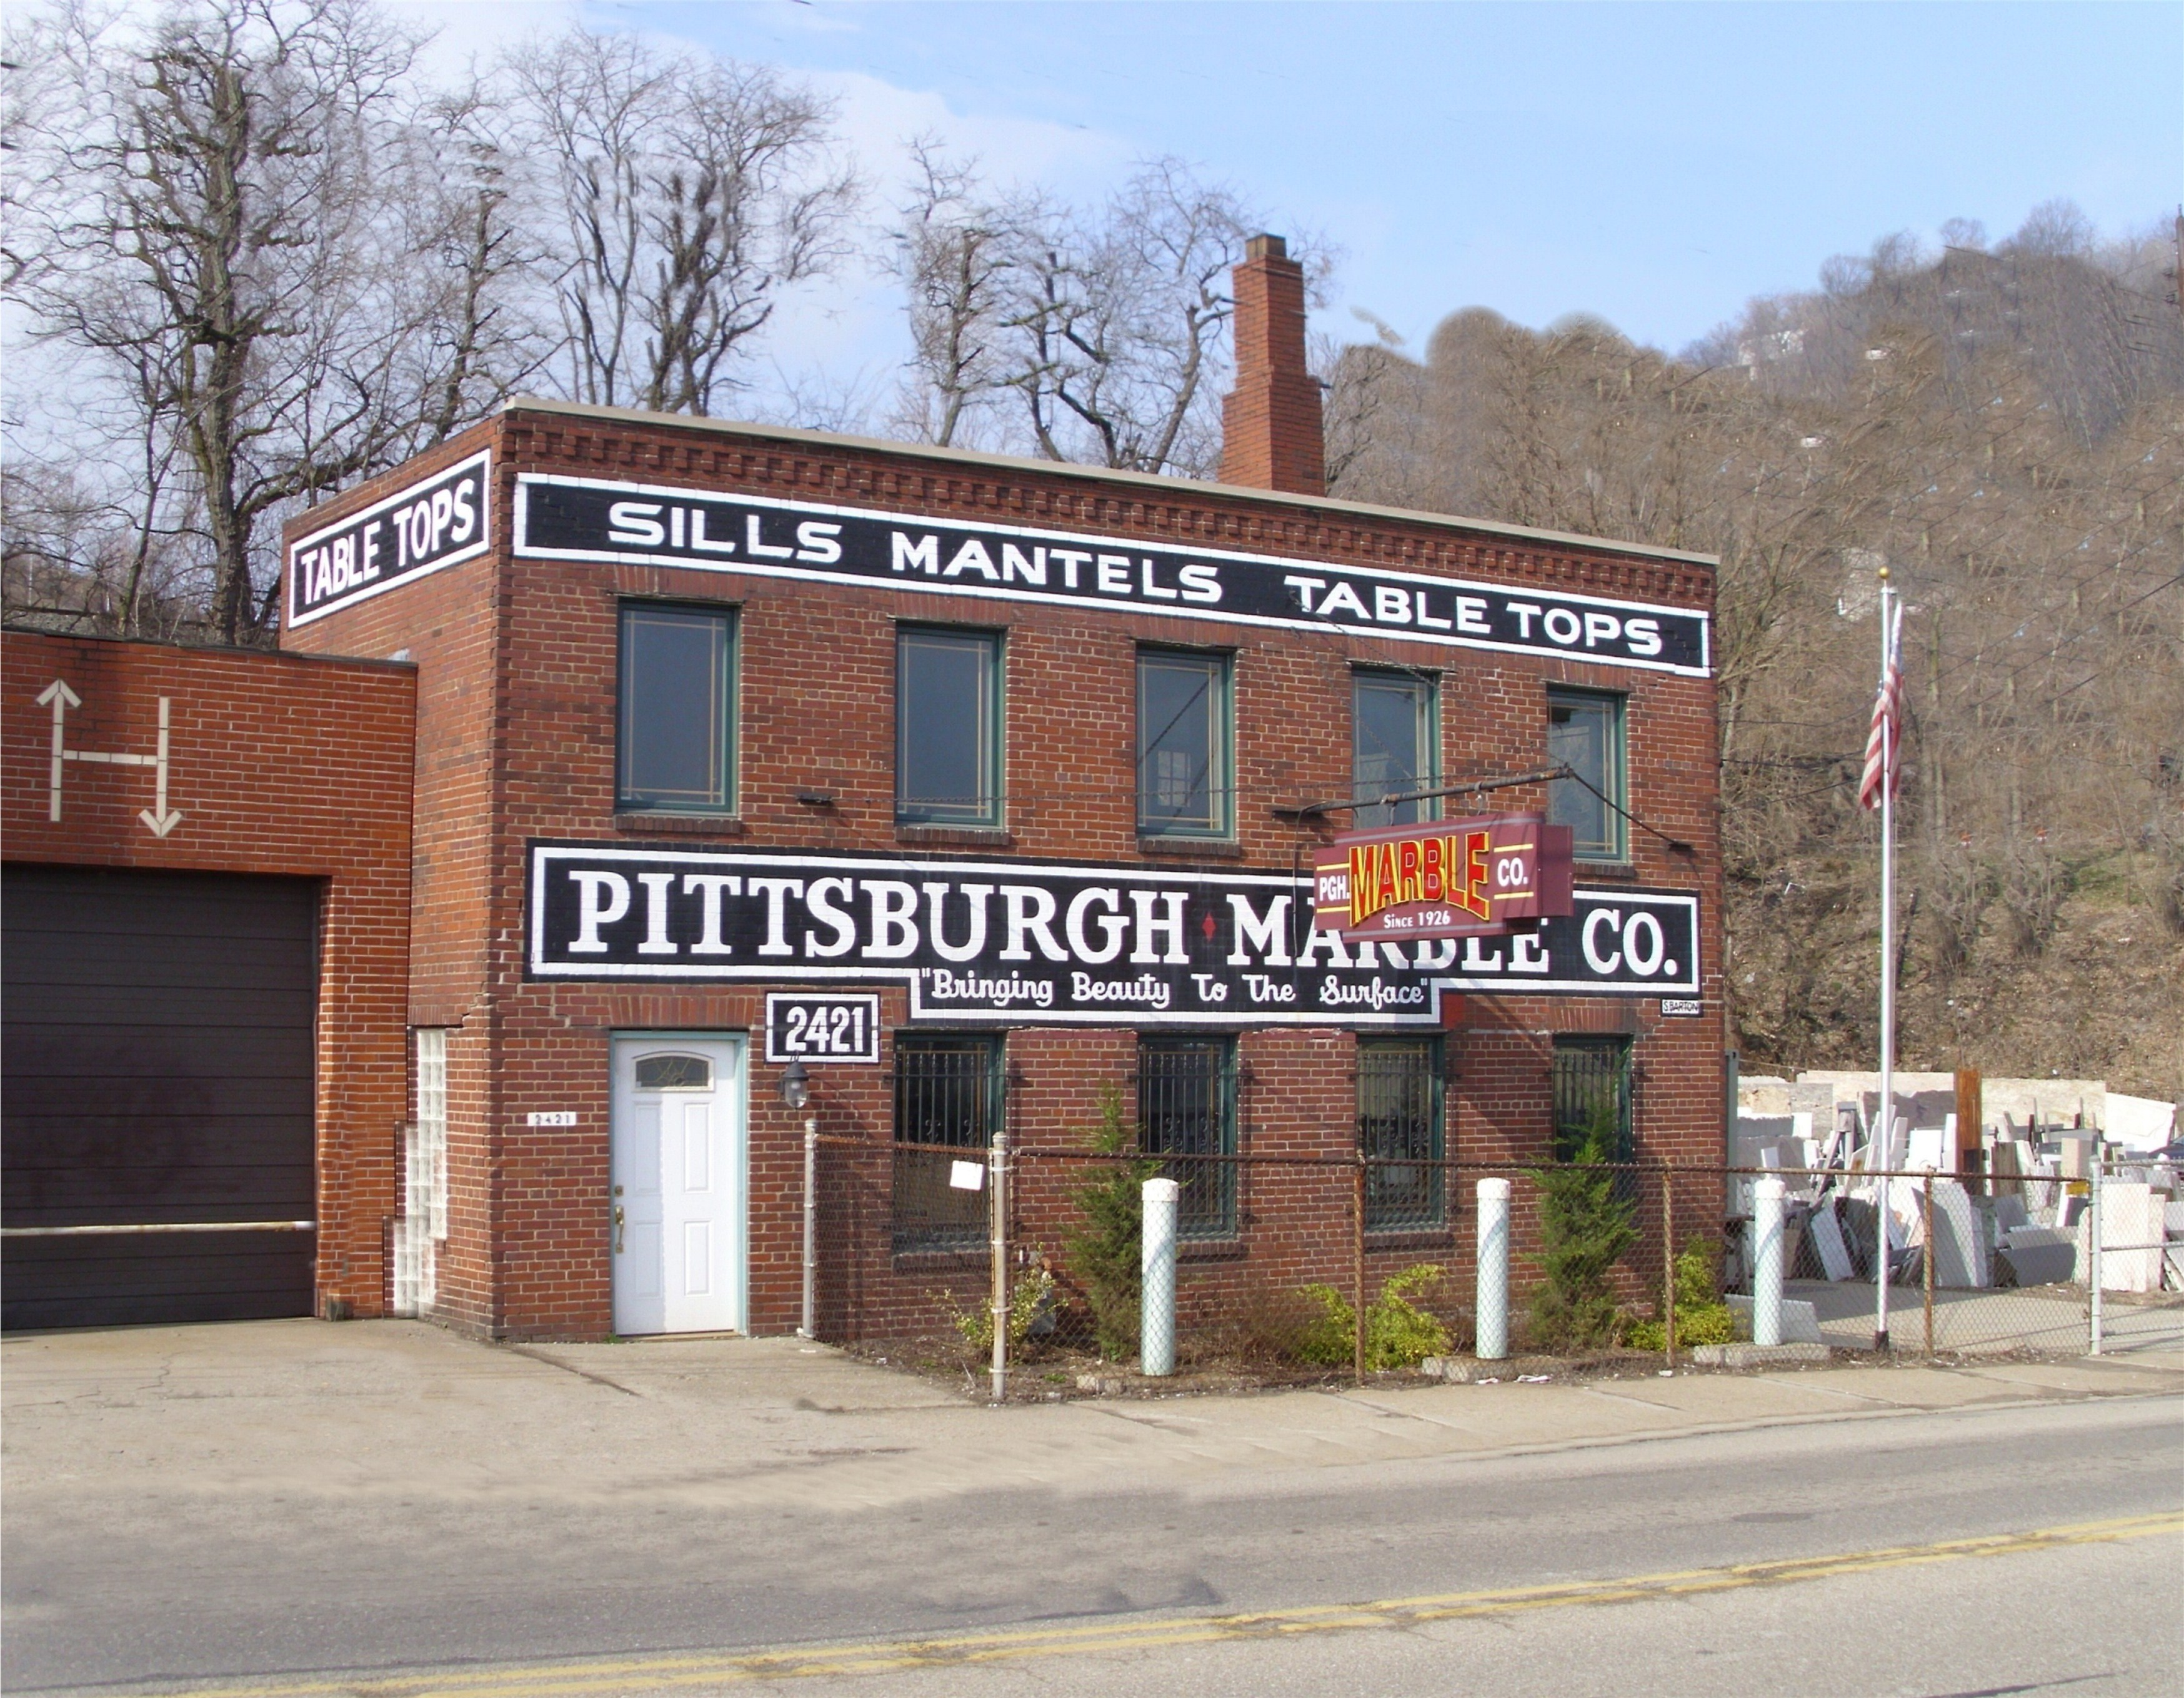 Pittsburgh Marble Company